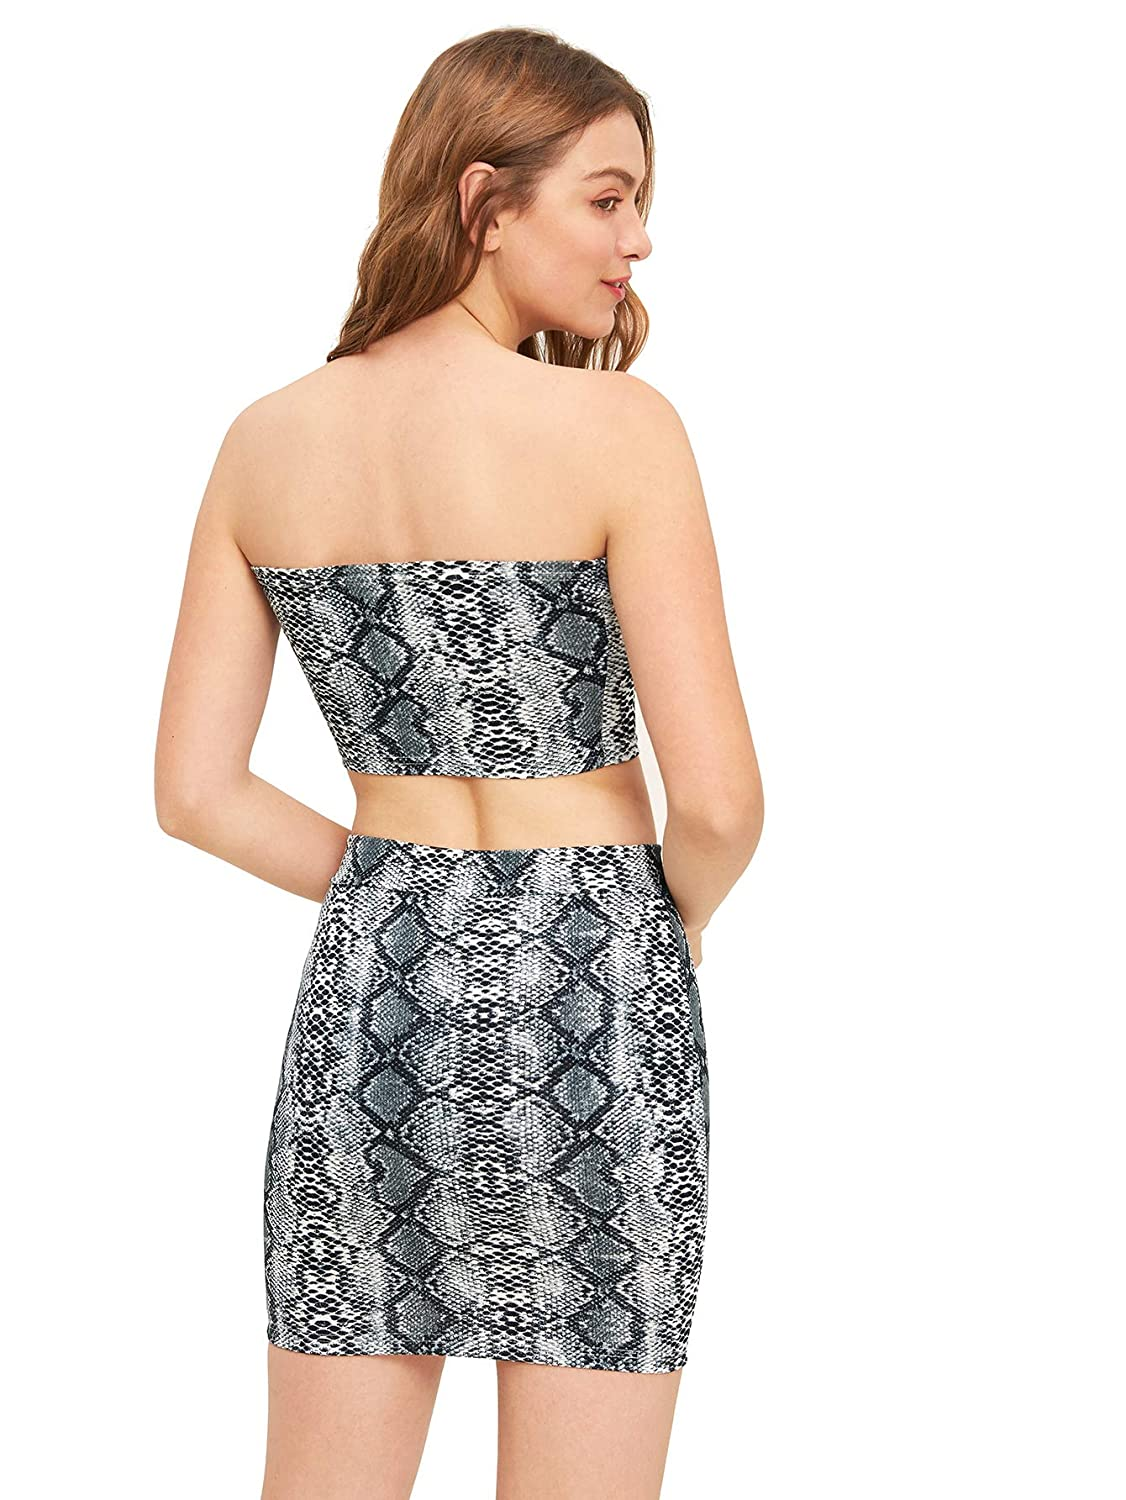 a1332db17d71 Floerns Women's Snake Print Sexy Bandeau Crop Top and Skirt Two Piece Set  at Amazon Women's Clothing store: